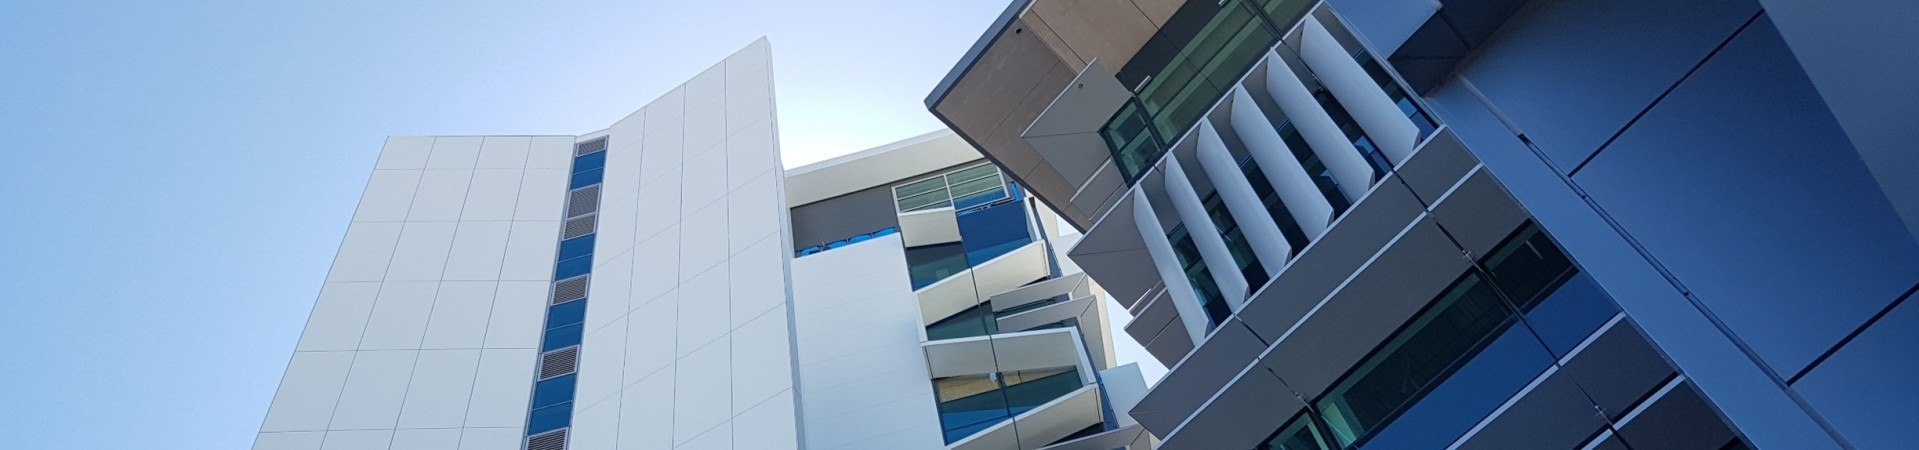 EQUITONE DtS Non-combustible Cladding from BLUECHIP